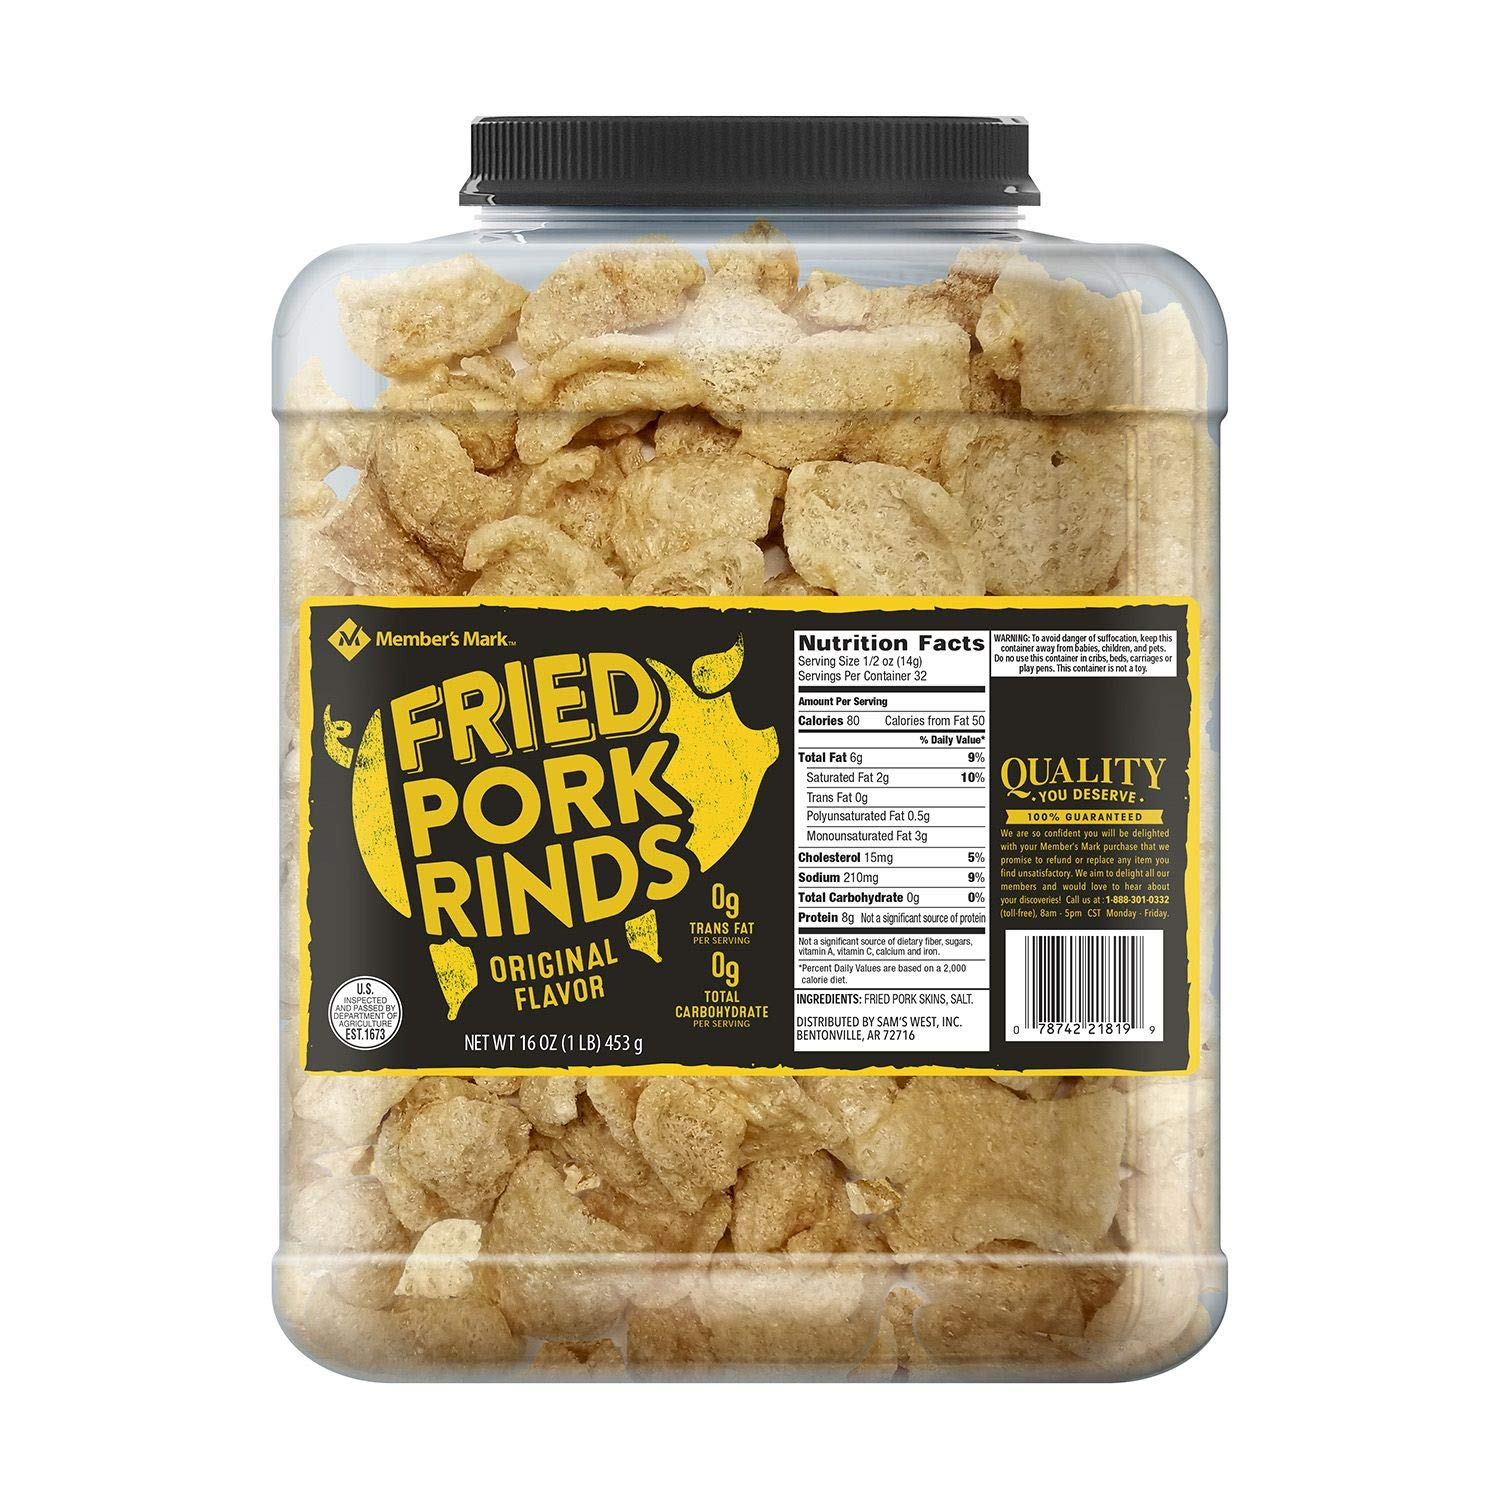 Member's Mark Original Fried Pork Rinds 16 oz. (pack of 4) A1 by Store - 383 (Image #1)